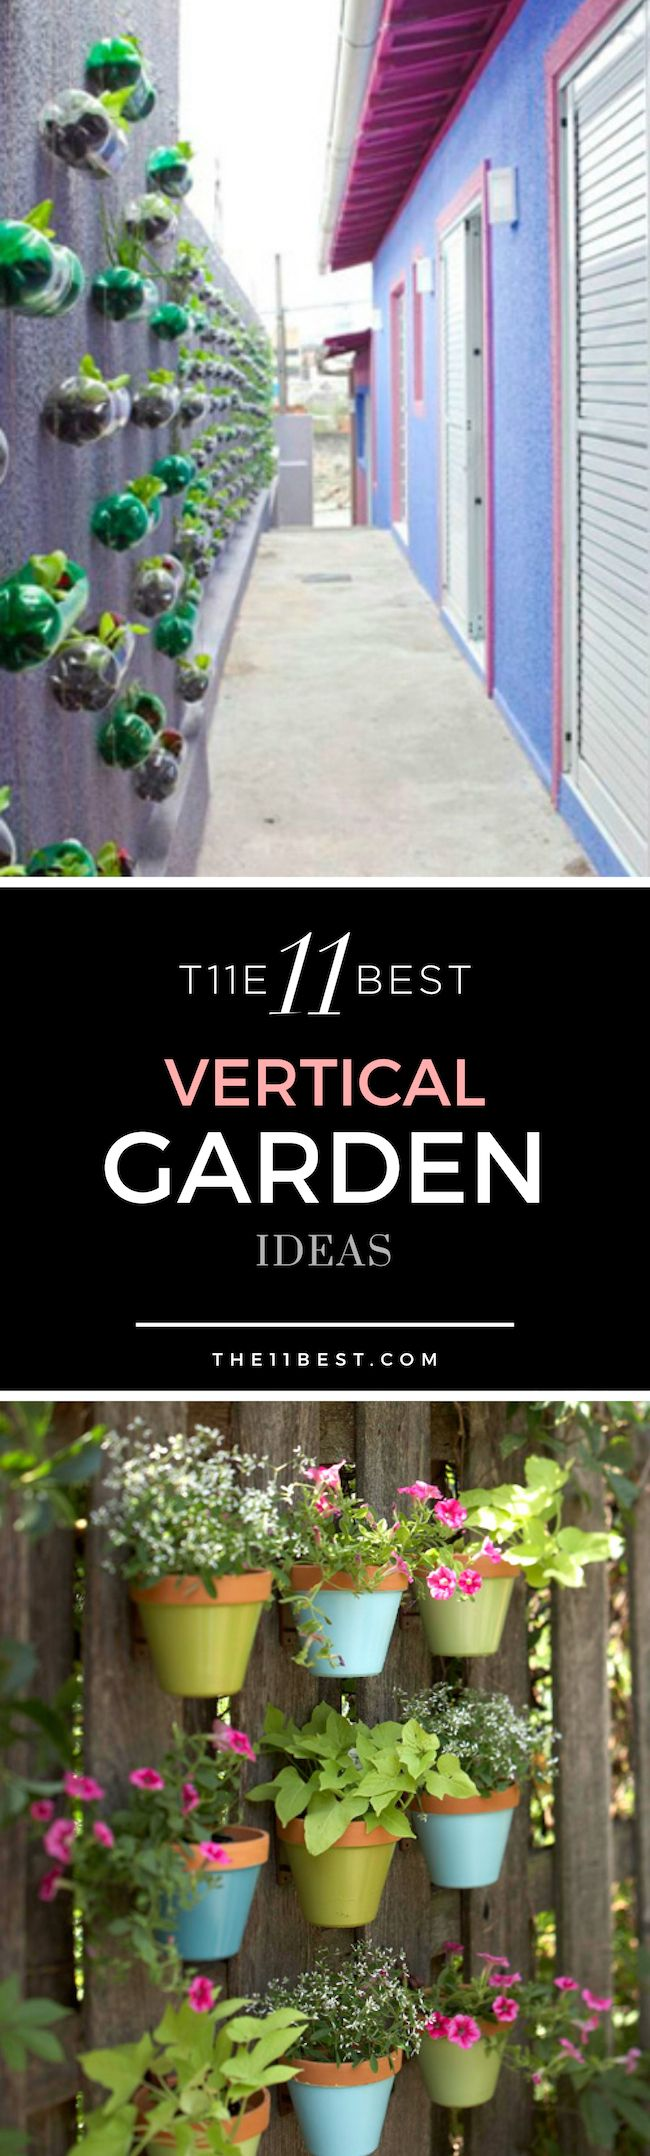 Vertical garden ideas. Wall garden ideas. Hanging garden directions. DIY tower garden